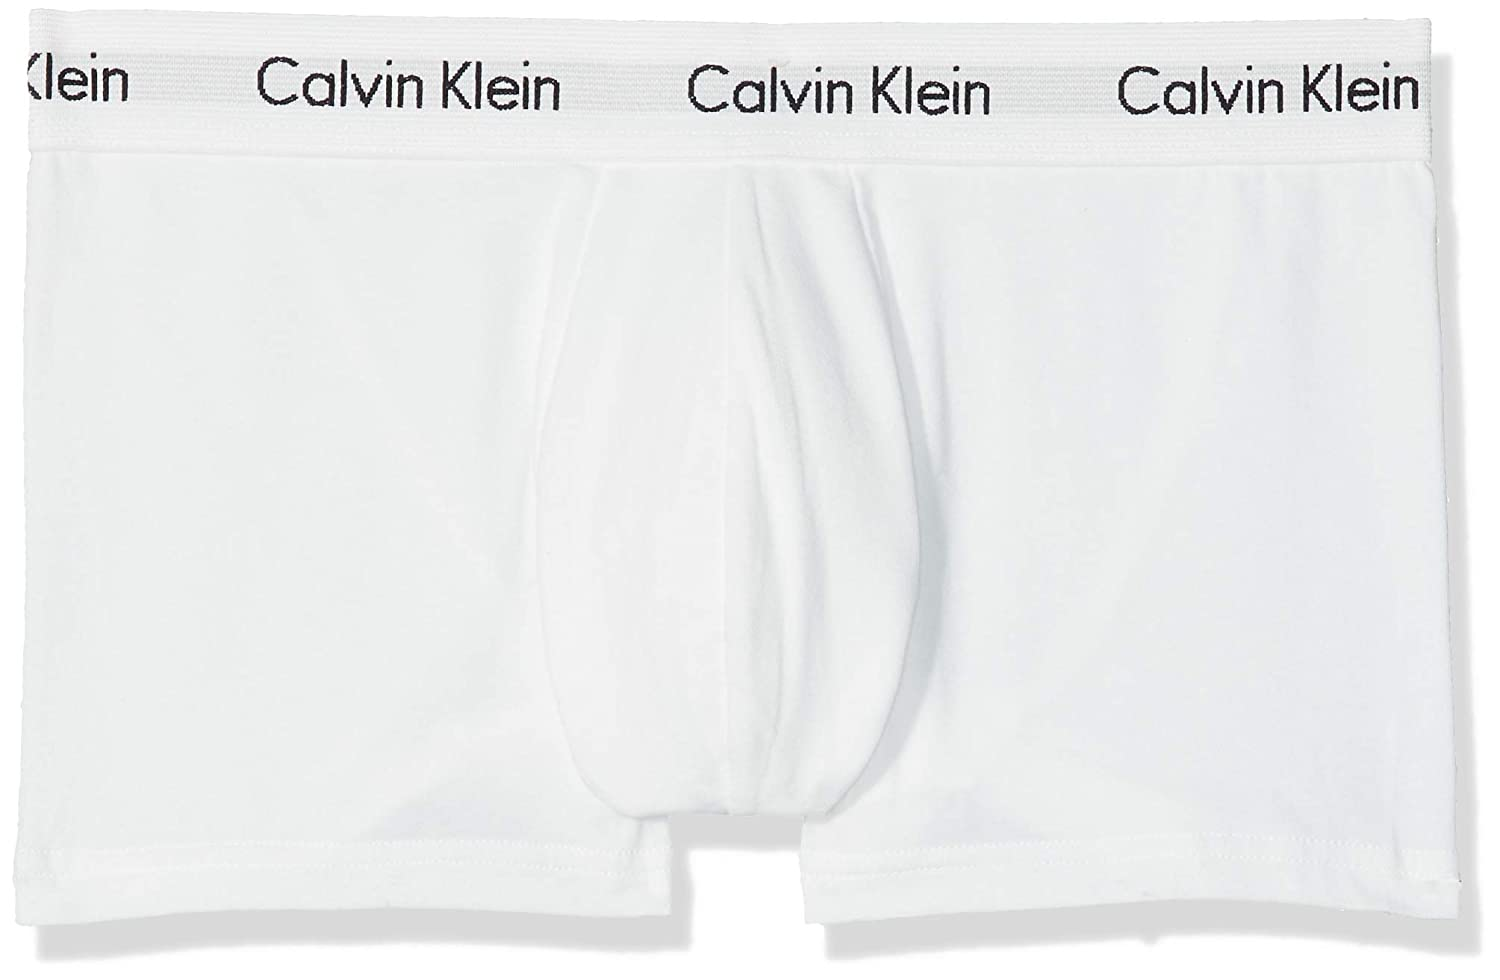 2cfd66c7c1486 Amazon.com  Calvin Klein Men s Underwear Cotton Stretch Trunk (3 Pack)   Clothing